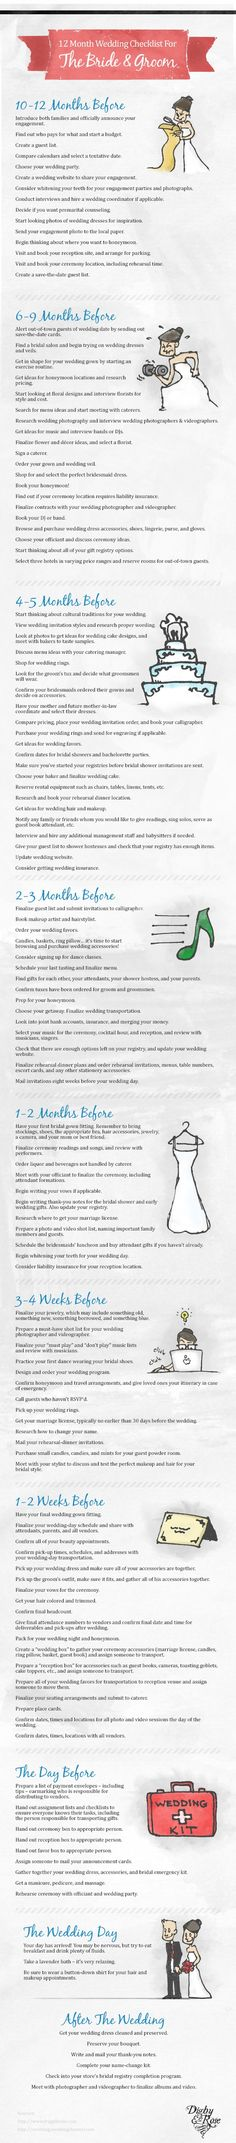 Infographic - 12 Month Wedding Checklist For The Bride And Groom